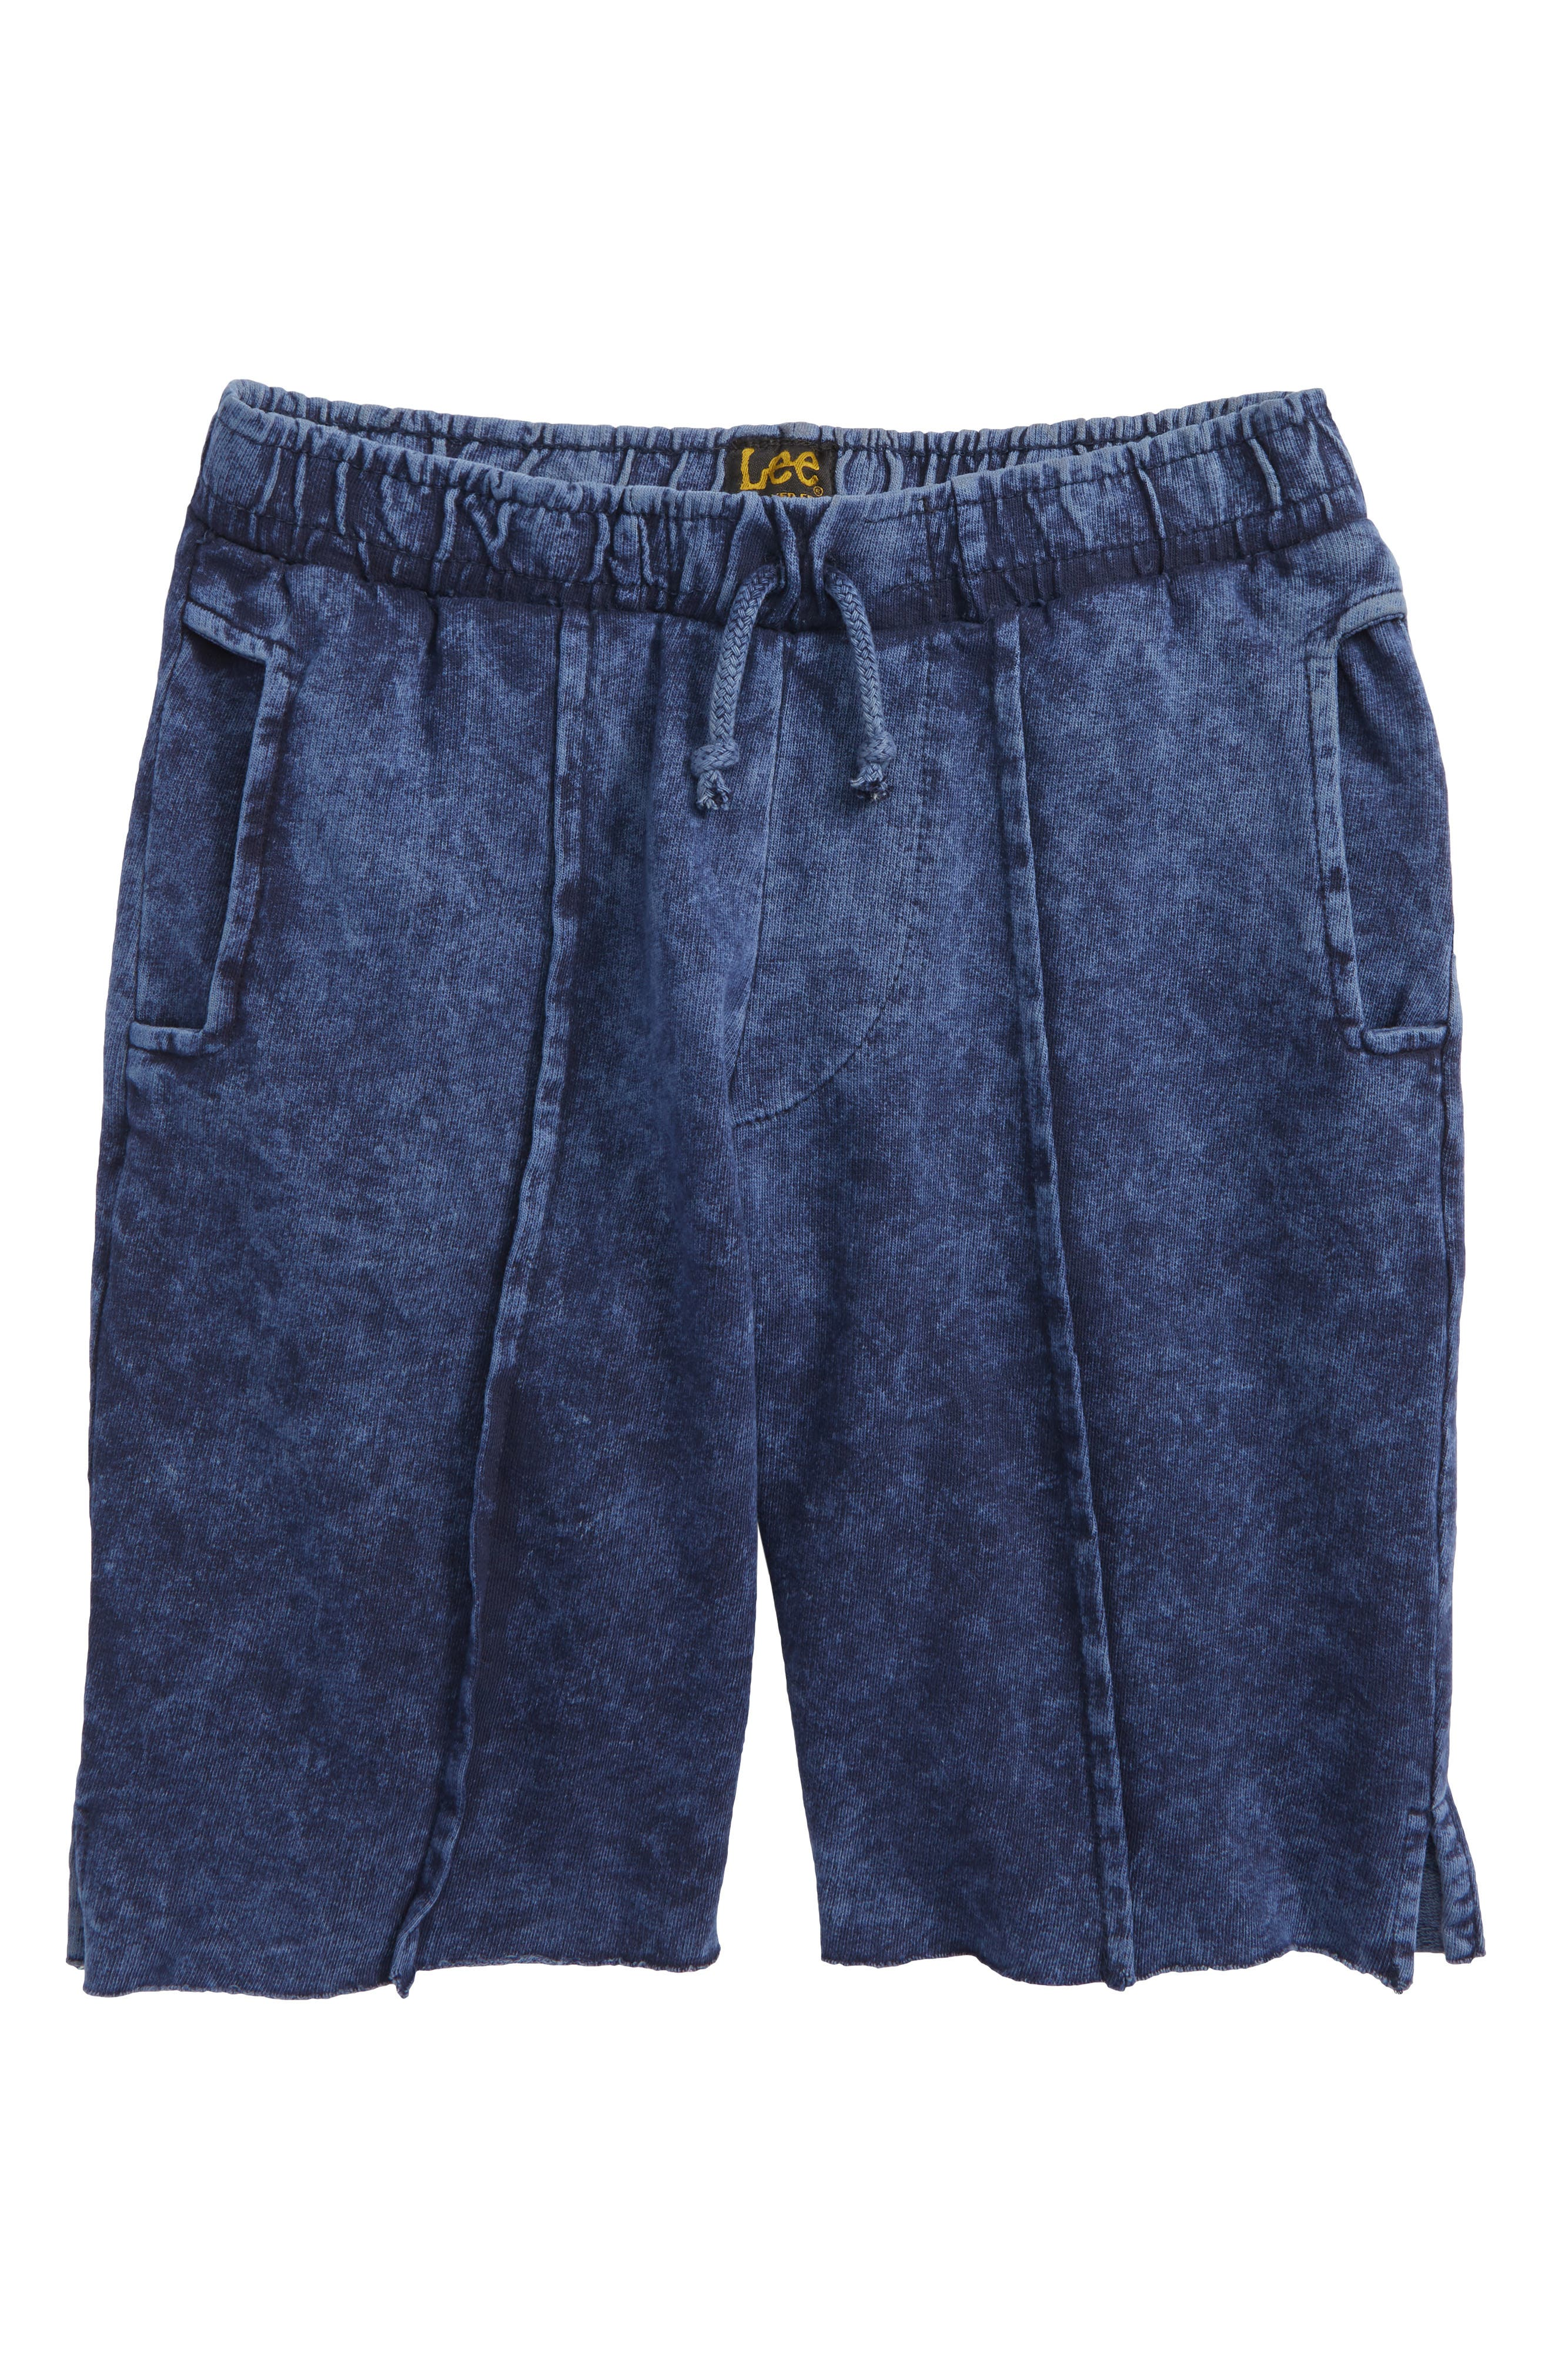 Lee Acid Wash Pull-On Denim Shorts (Big Boys)